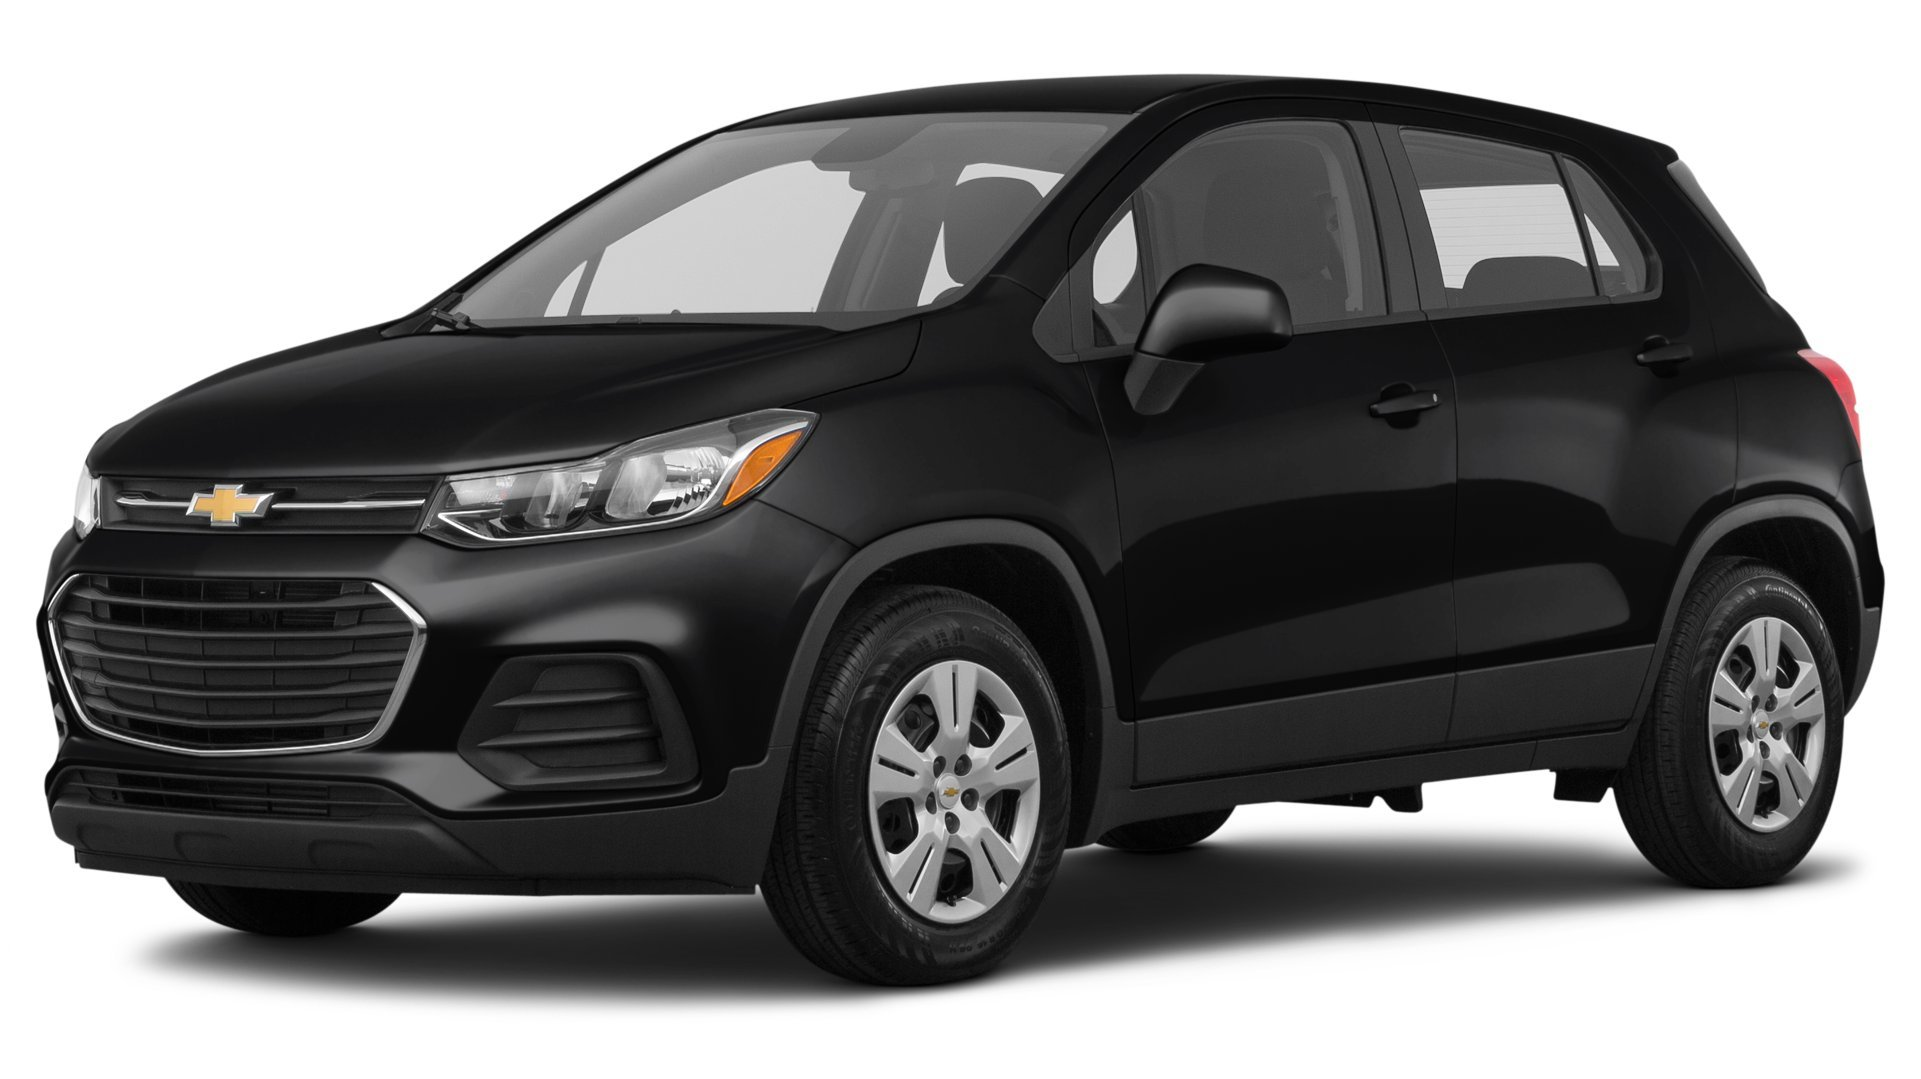 Amazon 2018 Chevrolet Trax Reviews and Specs Vehicles